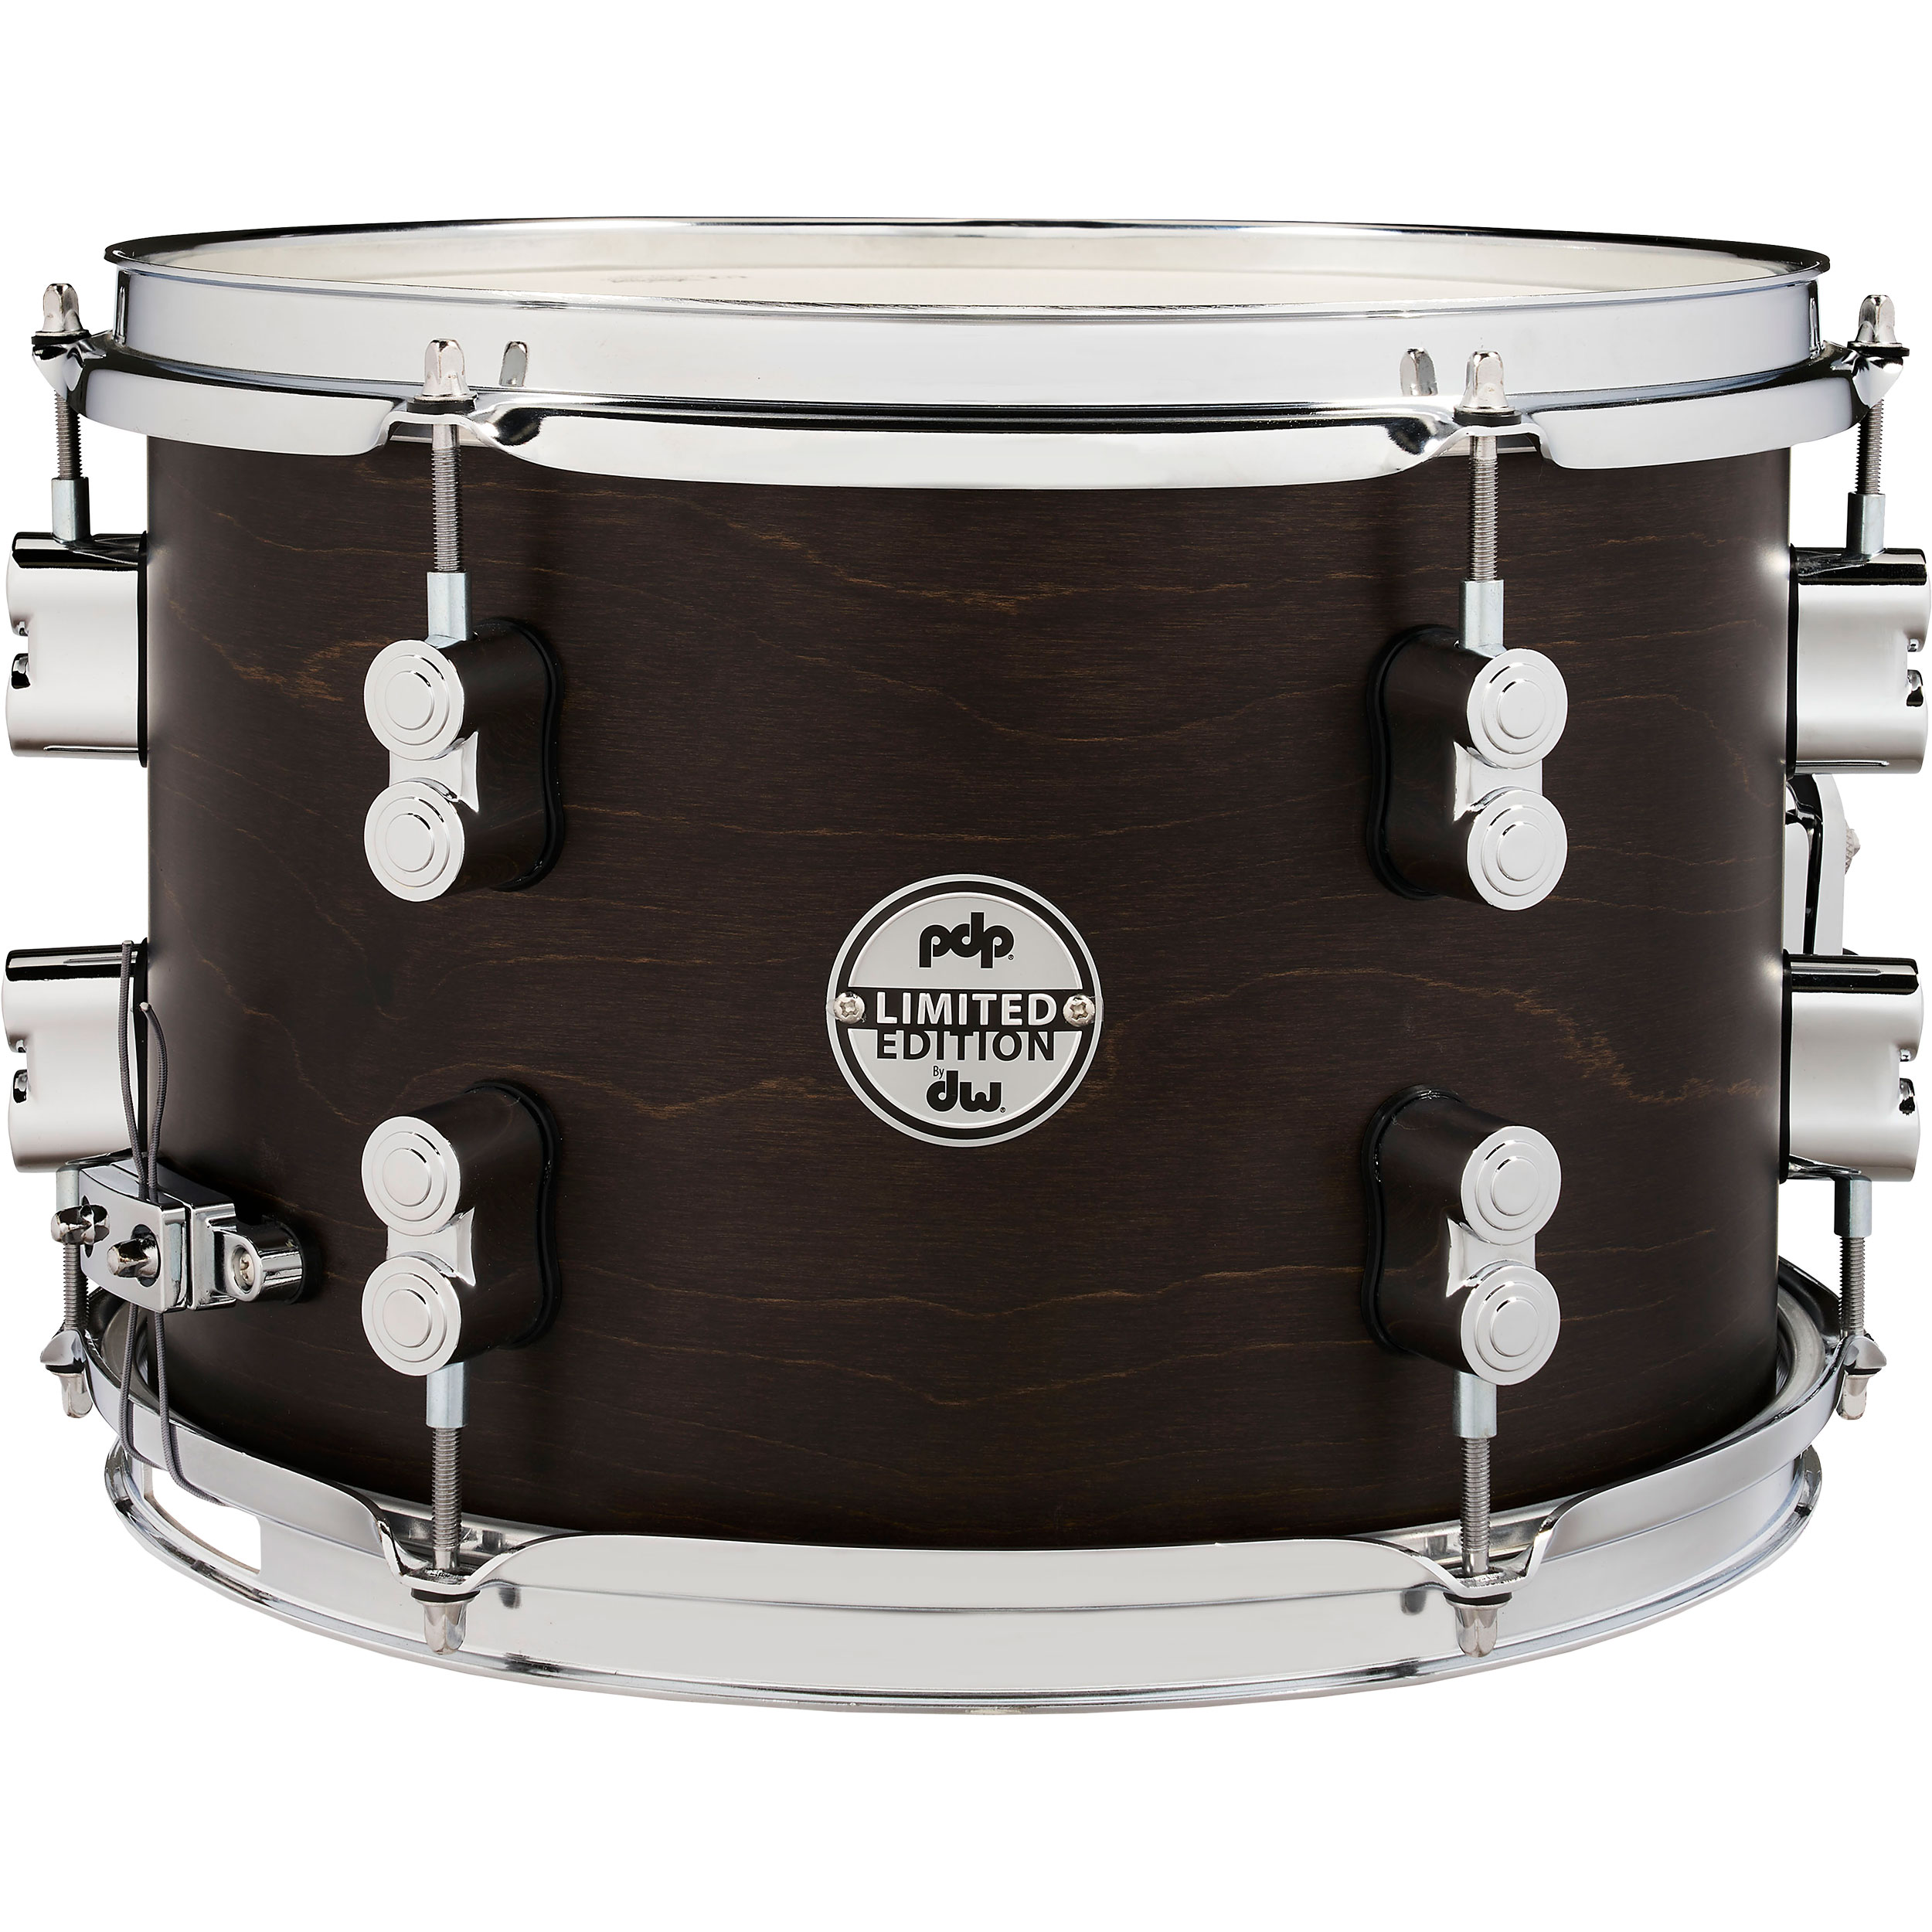 """PDP 8"""" x 12"""" Limited Edition Series Dry Maple Snare Drum in Dark Walnut"""